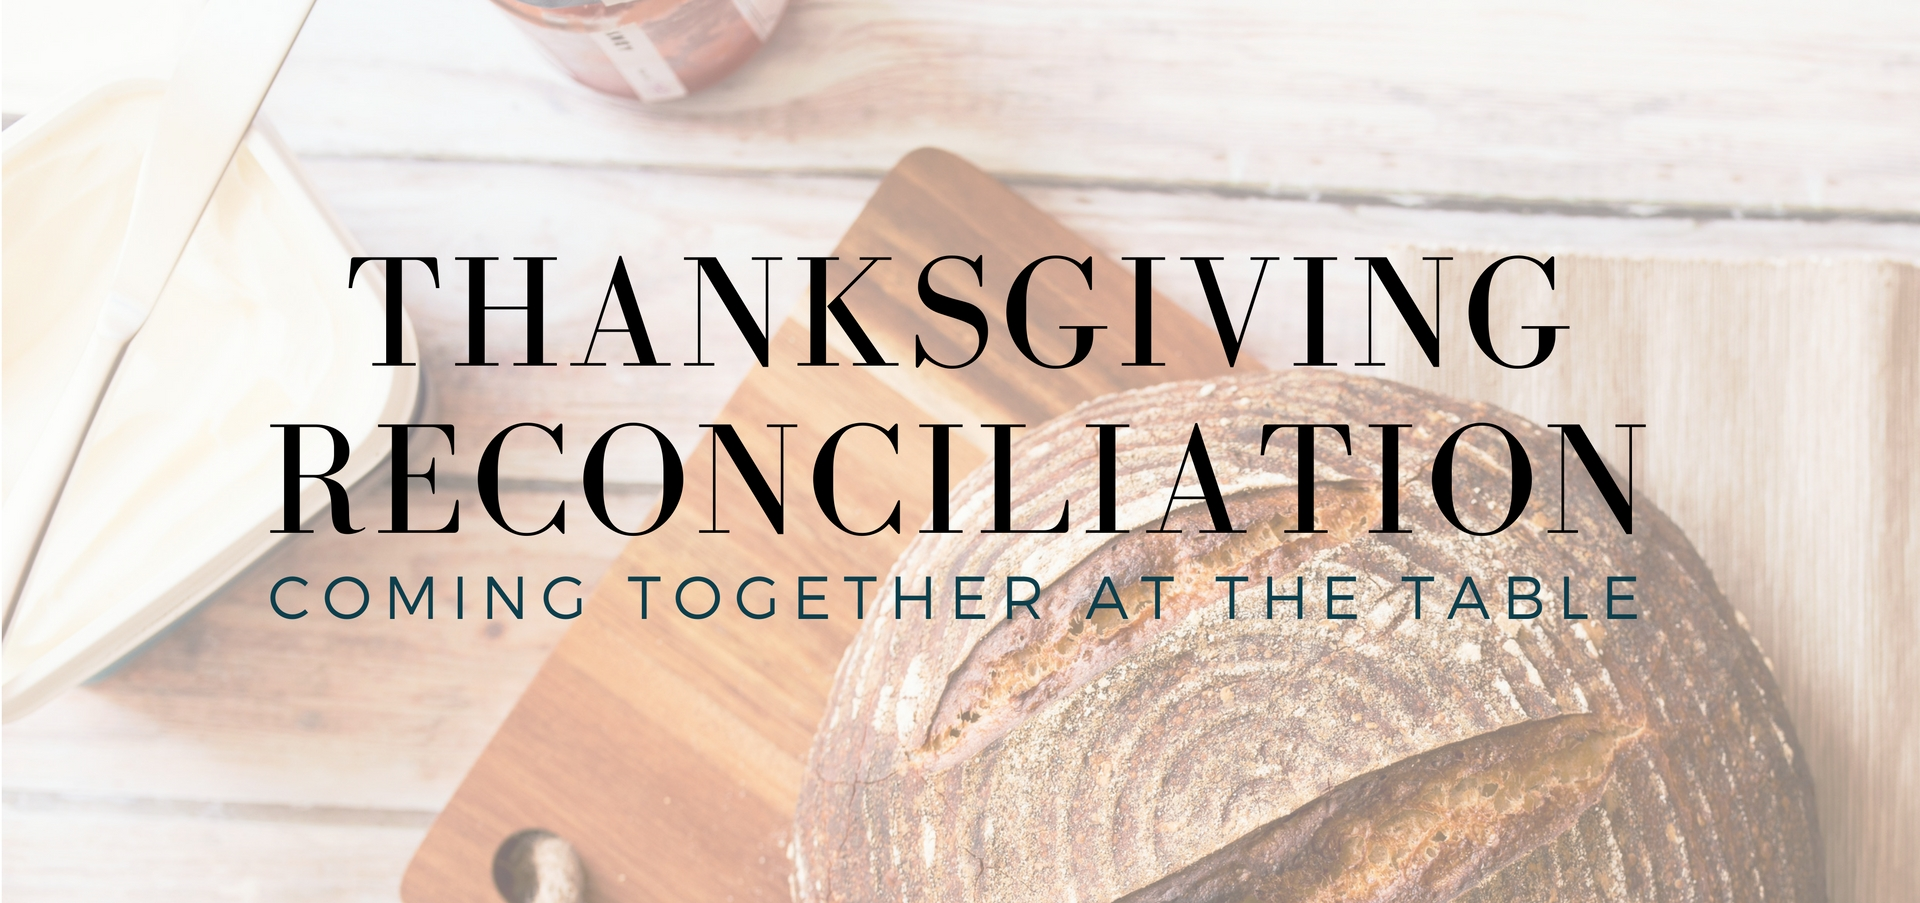 Thanksgiving Reconciliation: Coming to the Table - on family holidays in hard times - read on KateRaeDavis.com